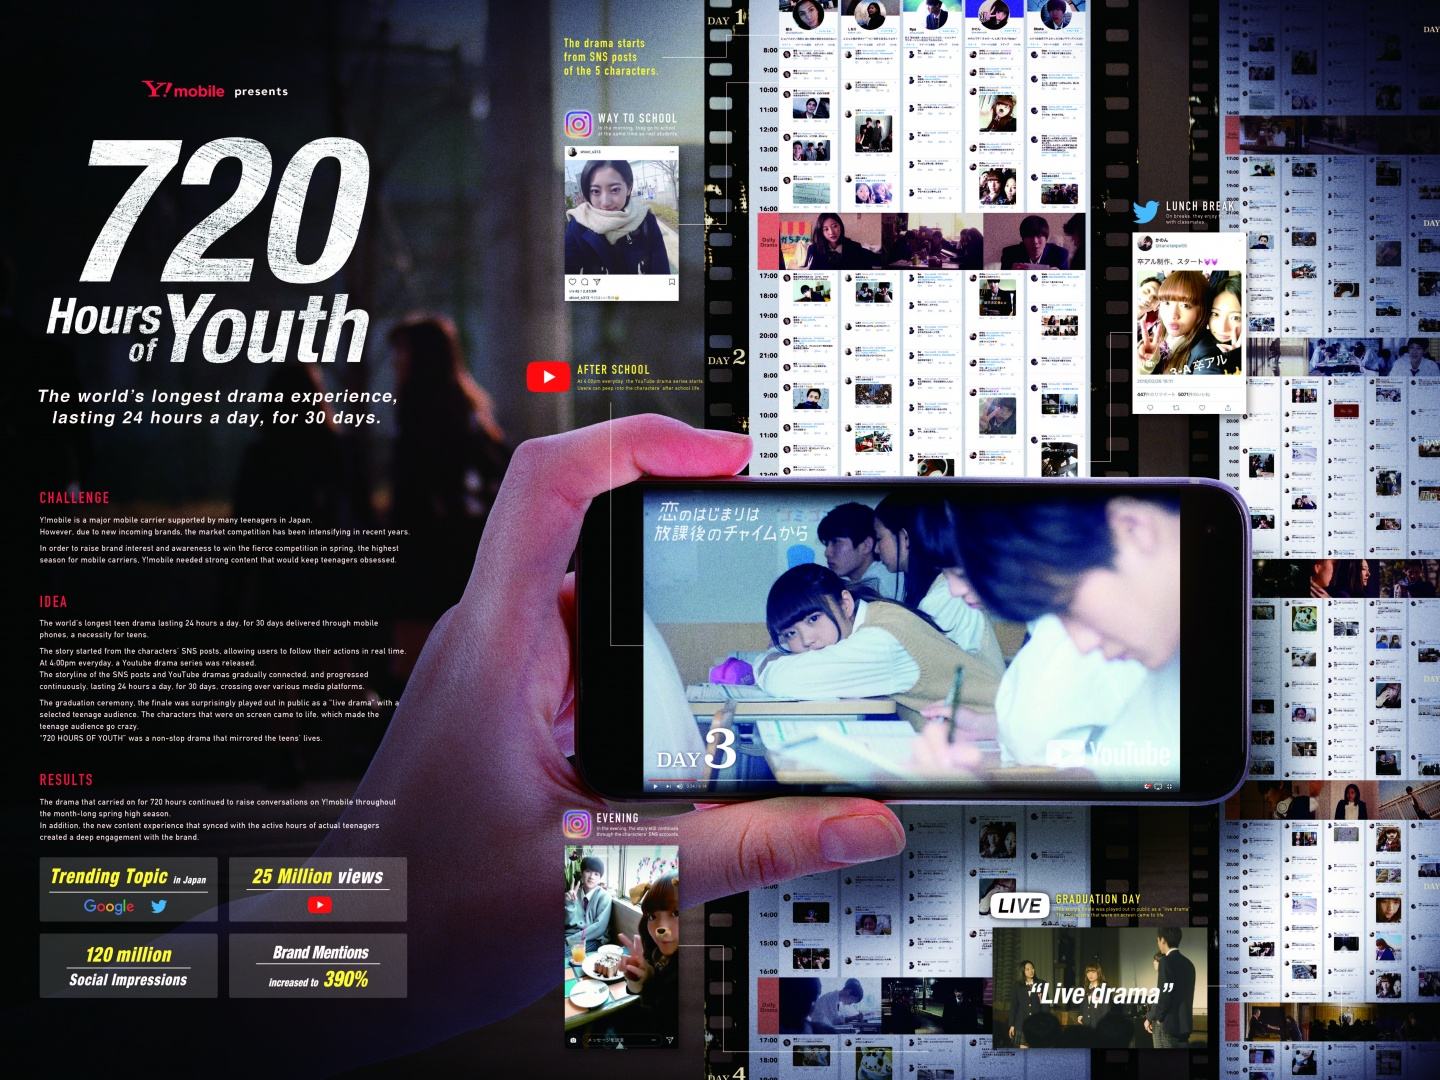 720 HOURS OF YOUTH Thumbnail